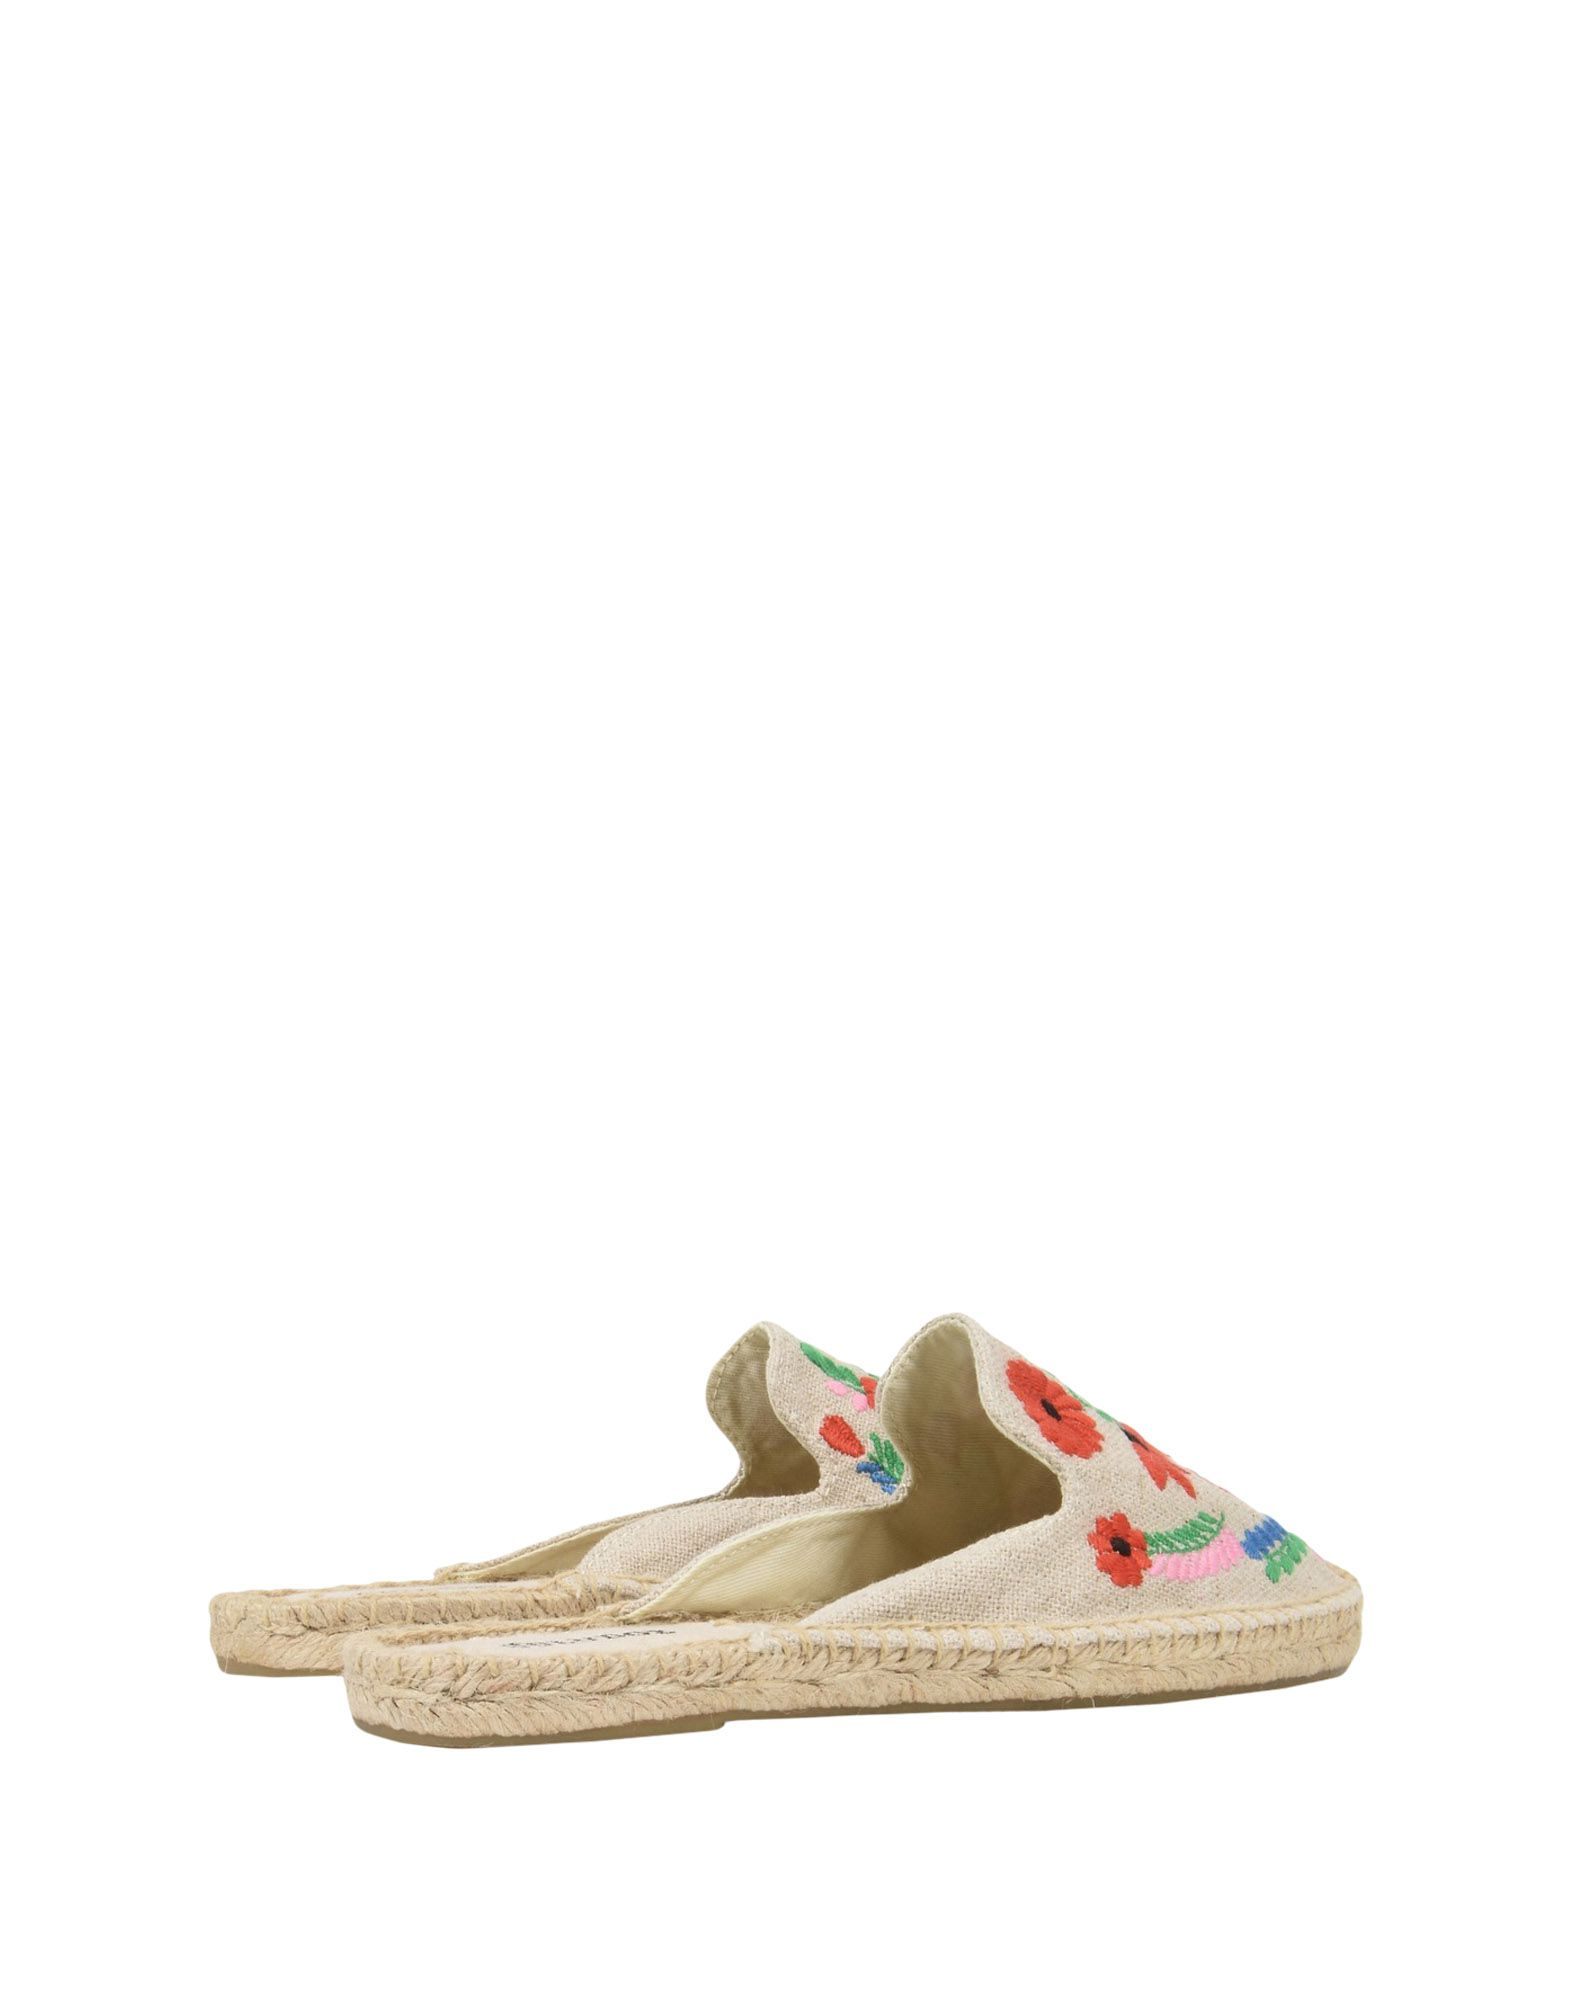 Soludos Embroidered Ibiza Embroidered Soludos Mule  11477847TA  f41fd5